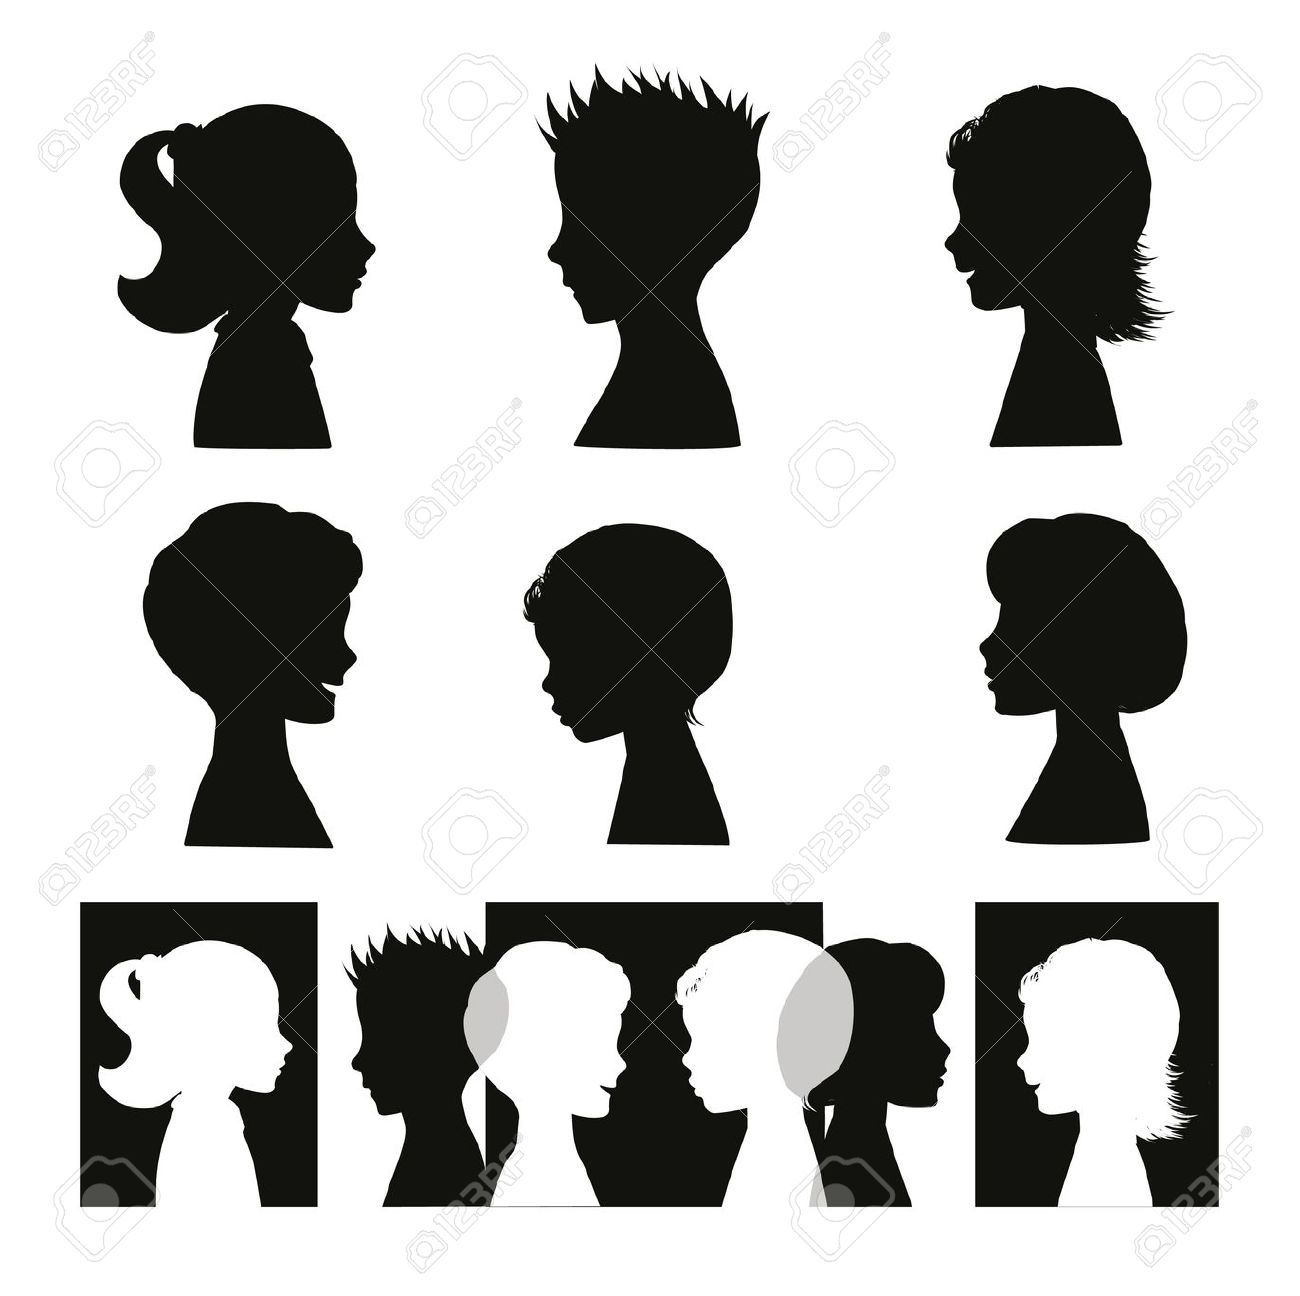 7,114 Side Face Stock Vector Illustration And Royalty Free Side.